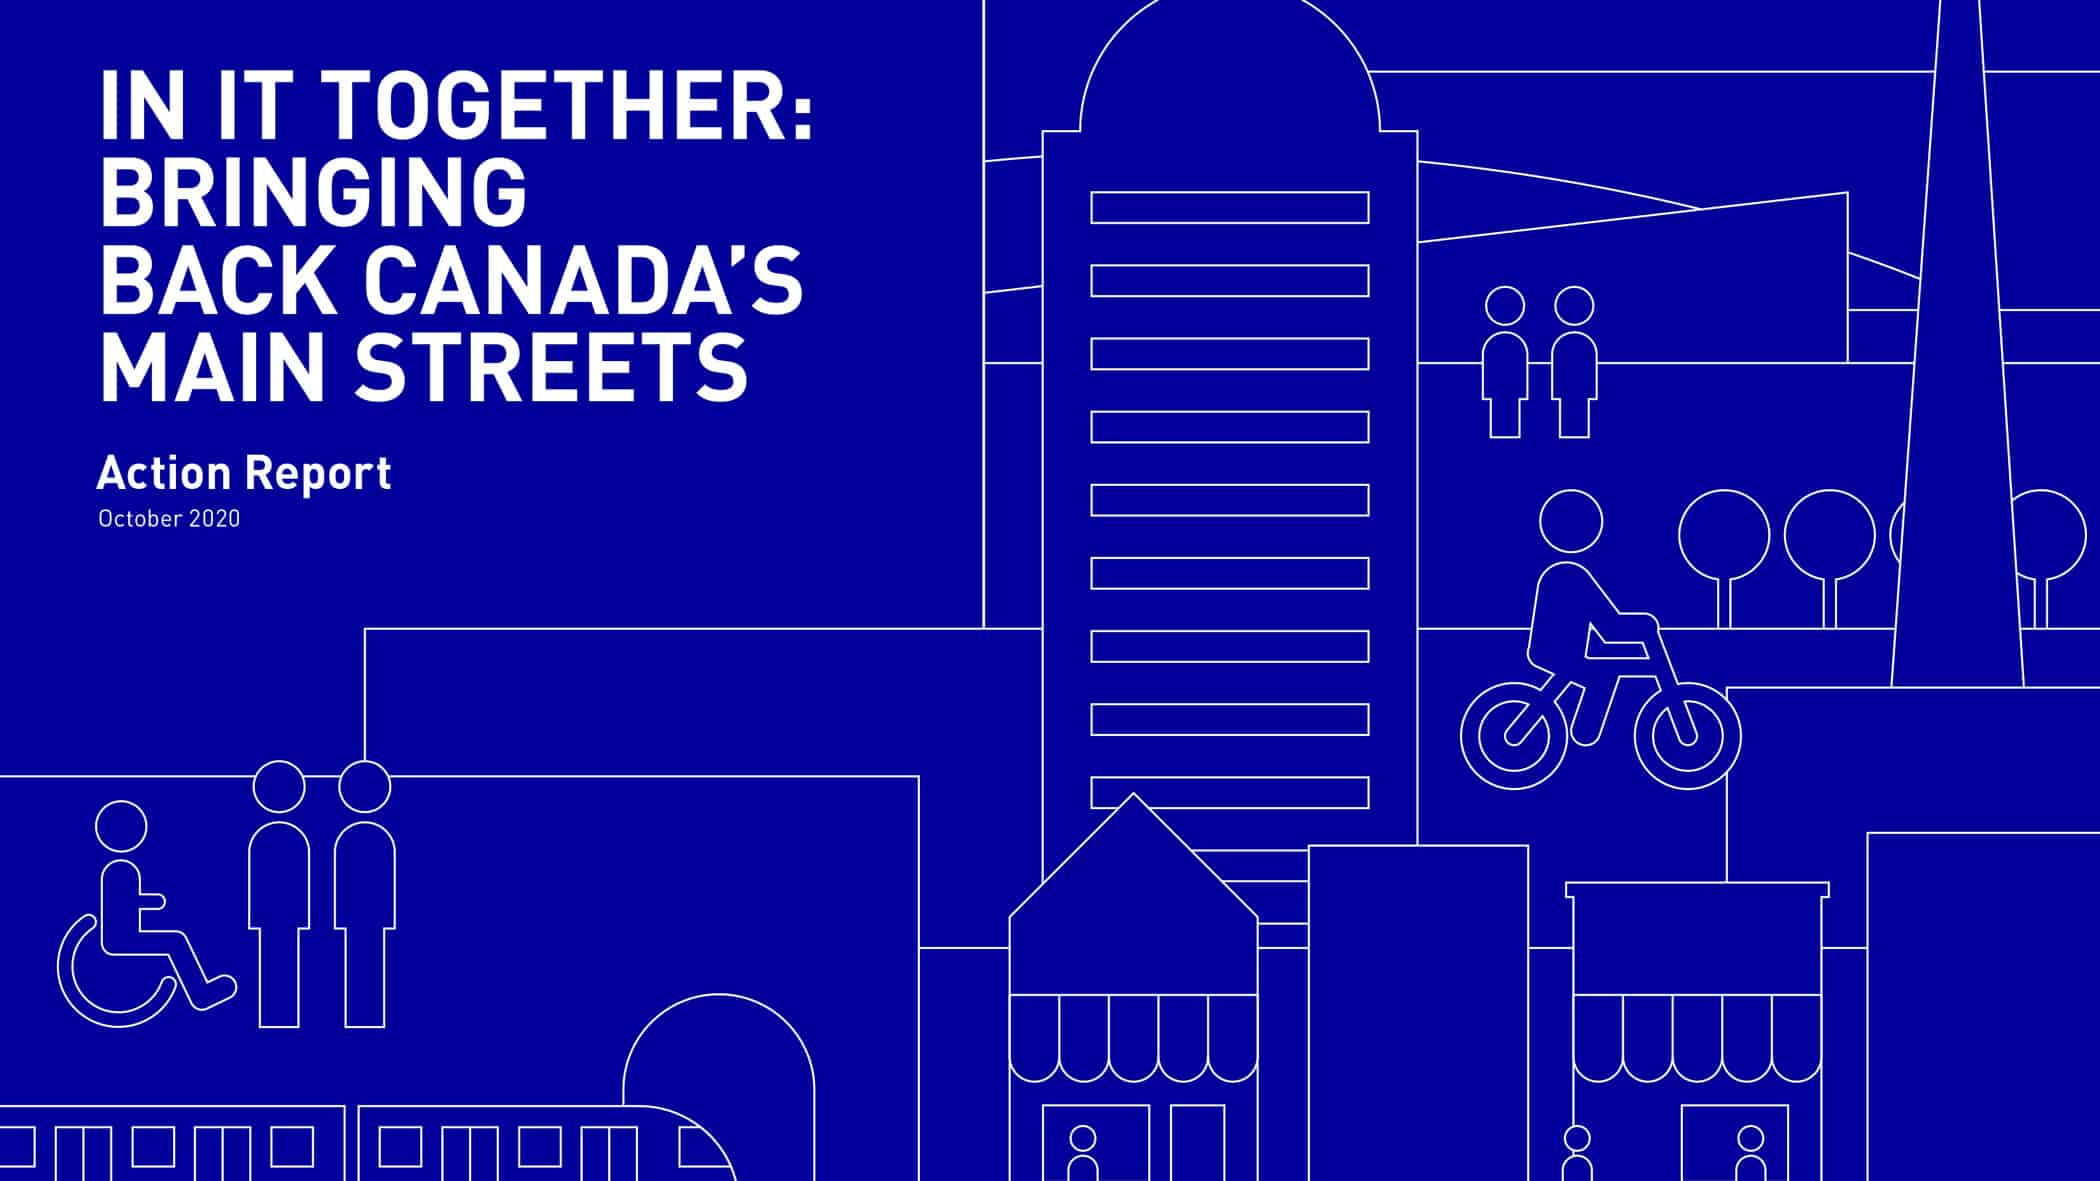 In it Together: Bringing Back Canada's Main Streets